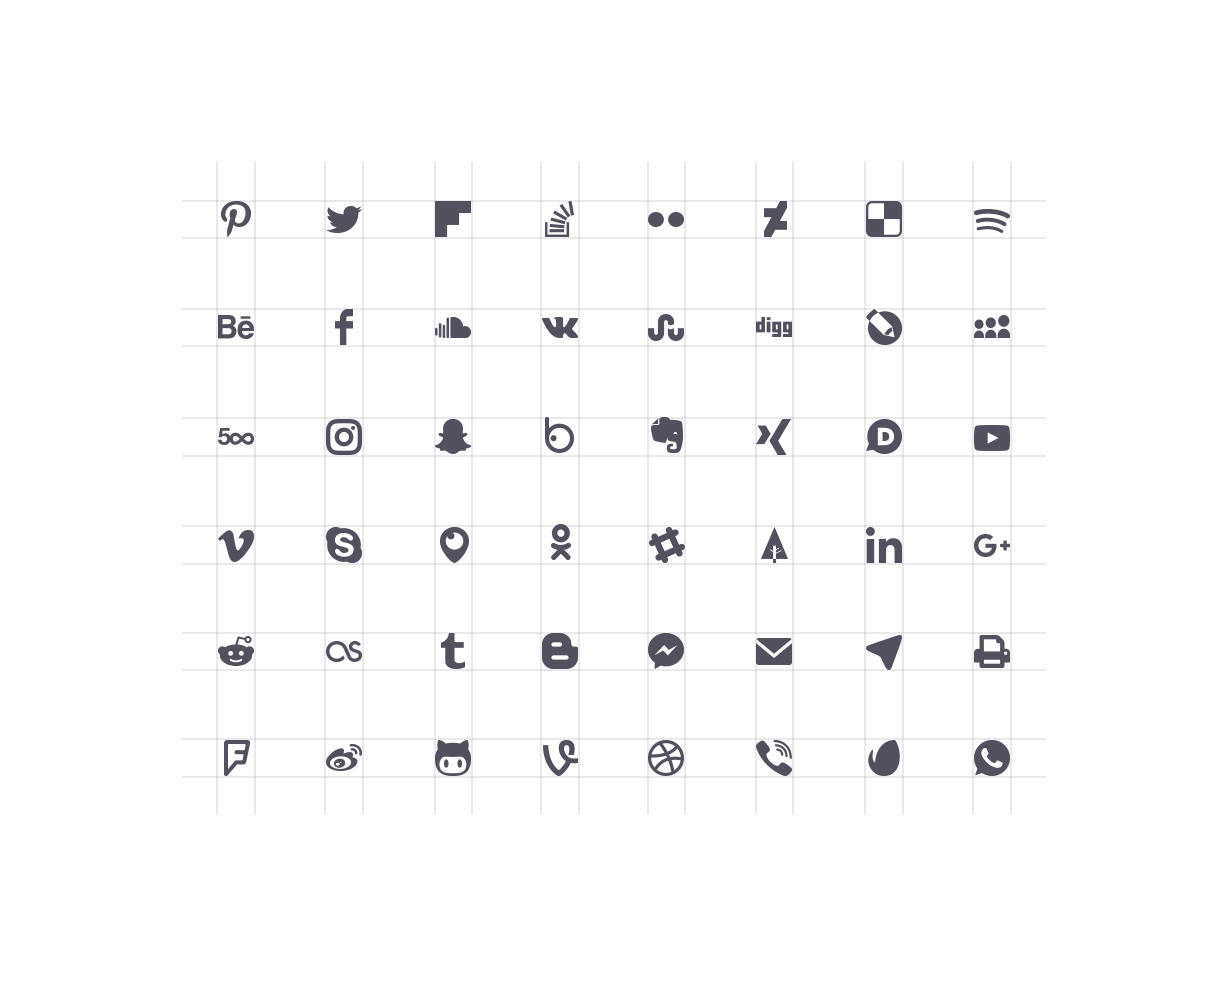 social media icons black and white. elfsight-social-media-icons-screenshot-1.jpg social media icons black and white